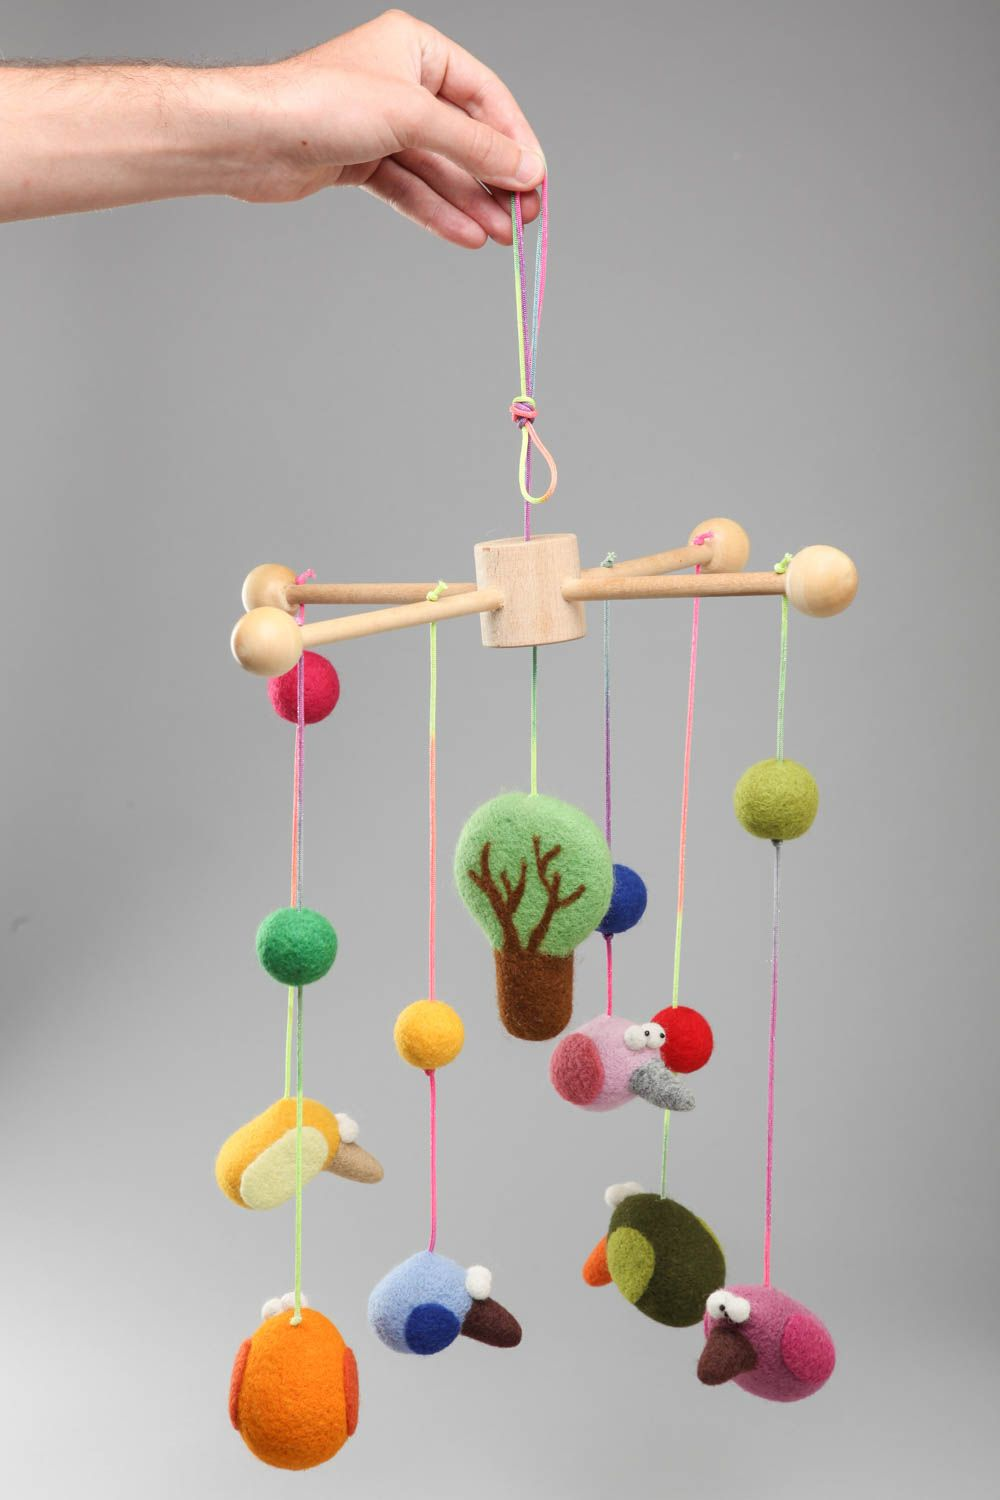 Crib activity toys for babies - Crib Toys For Babies That Hang For Newborns Handmade Designer Hanging Crib Toys Felted Of